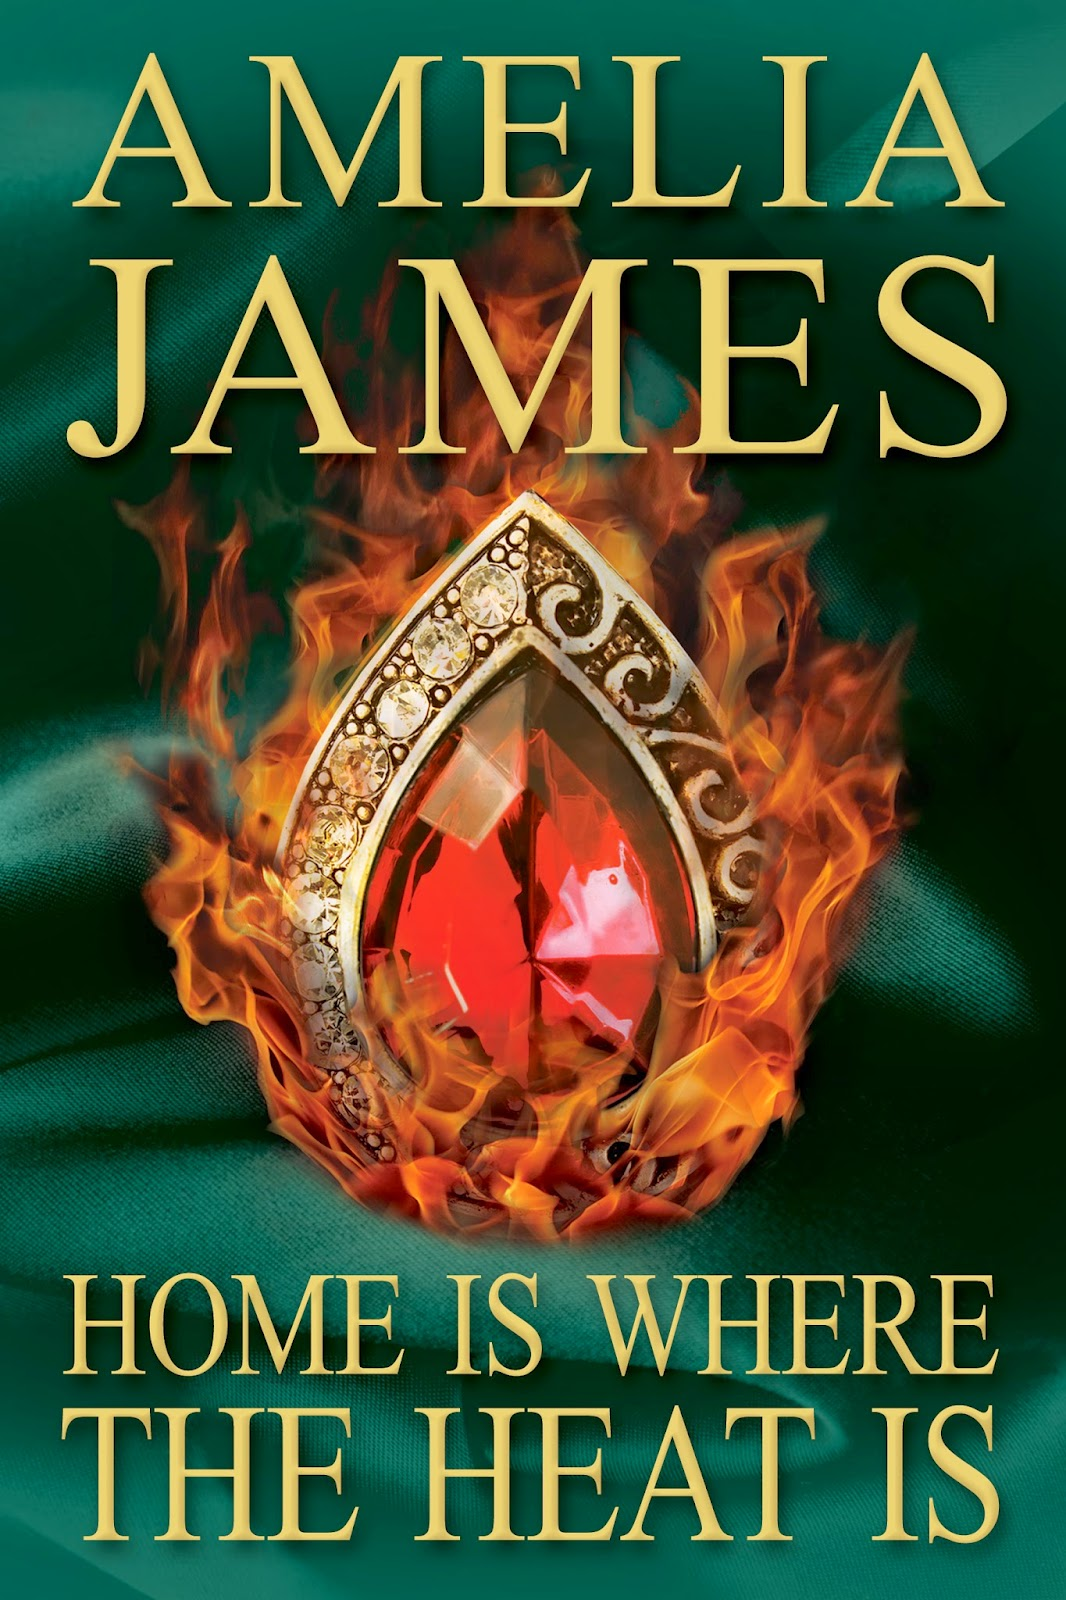 http://www.amazon.com/Home-Where-Heat-Amelia-James-ebook/dp/B00K4IM7TK/ref=sr_1_1?s=books&ie=UTF8&qid=1399256819&sr=1-1&keywords=home+is+where+the+heat+is#_